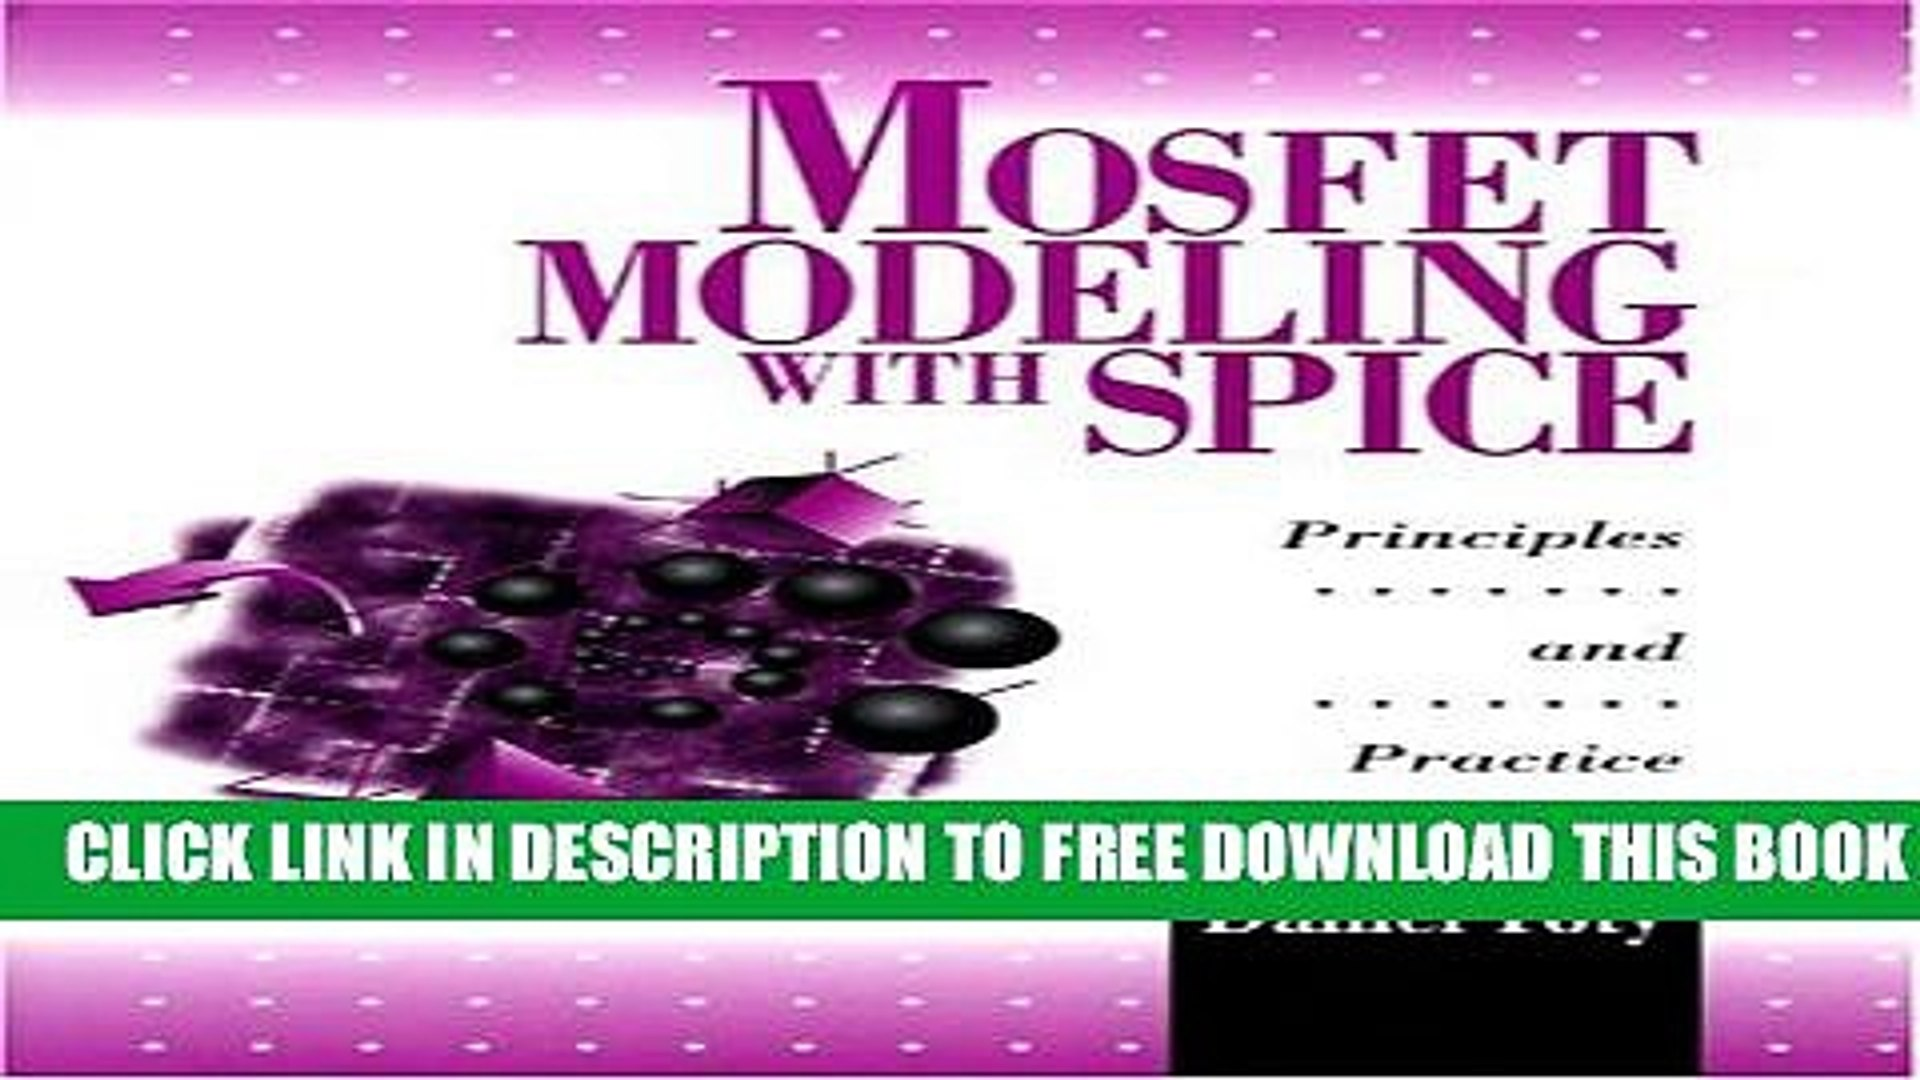 New Book MOSFET Modeling With SPICE: Principles and Practice